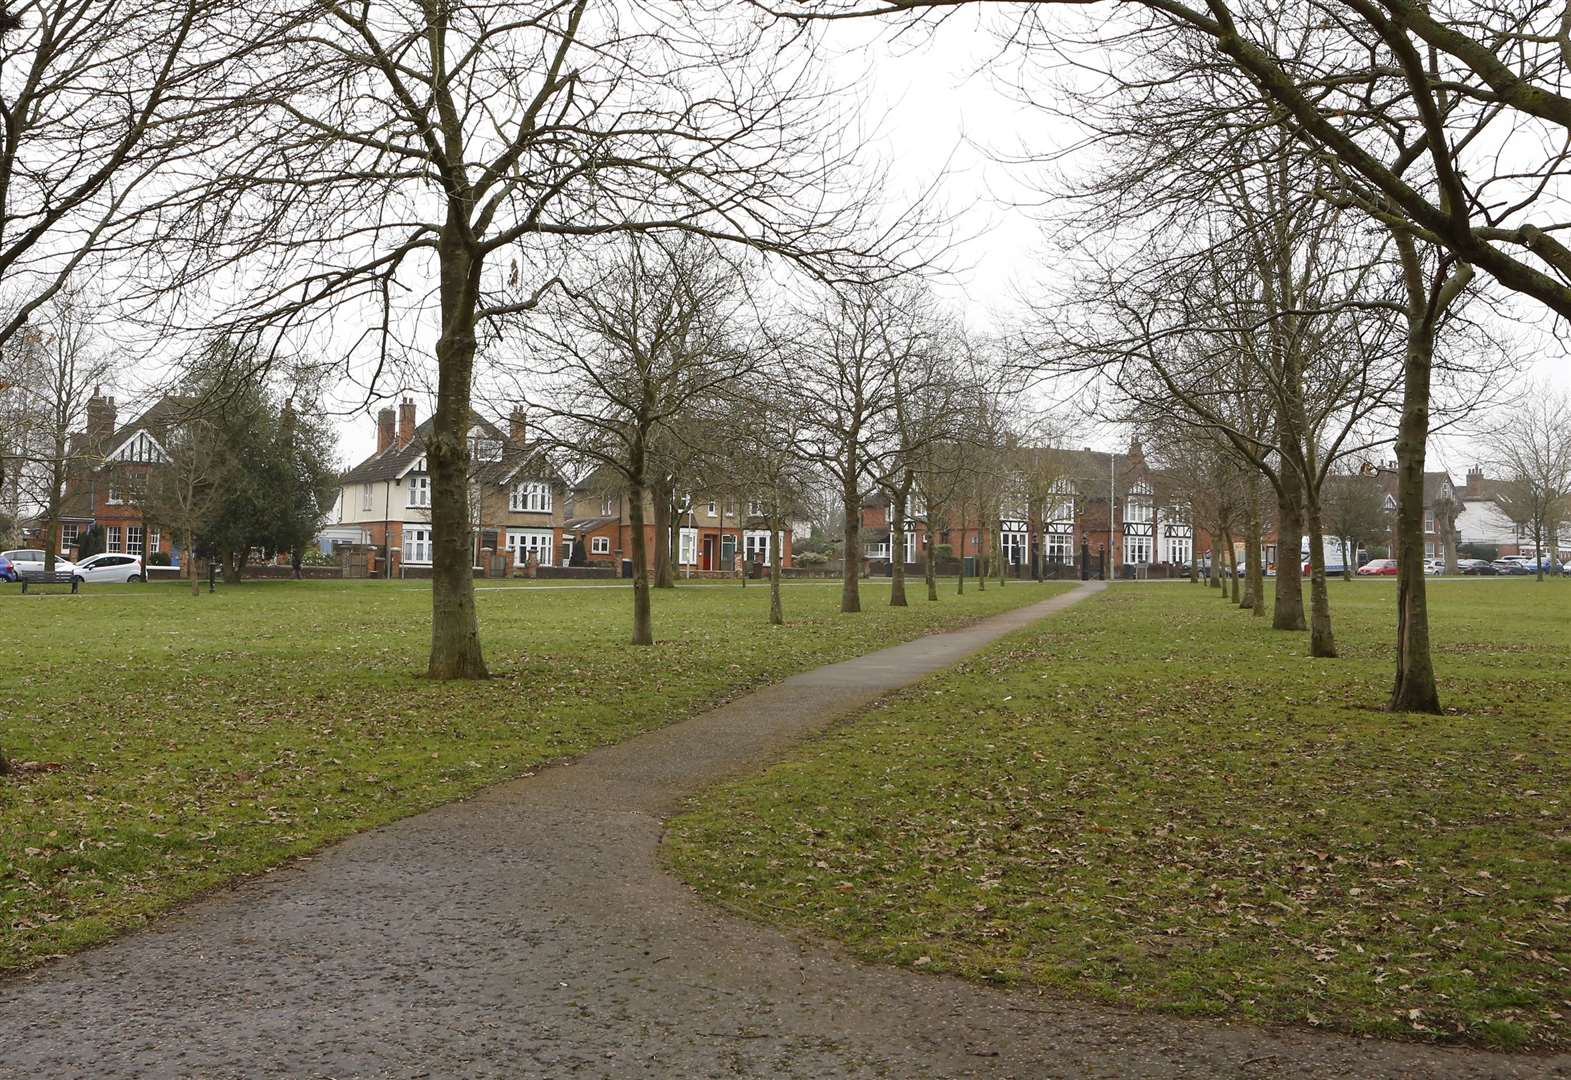 Woman 'sexually assaulted by cyclist in park'